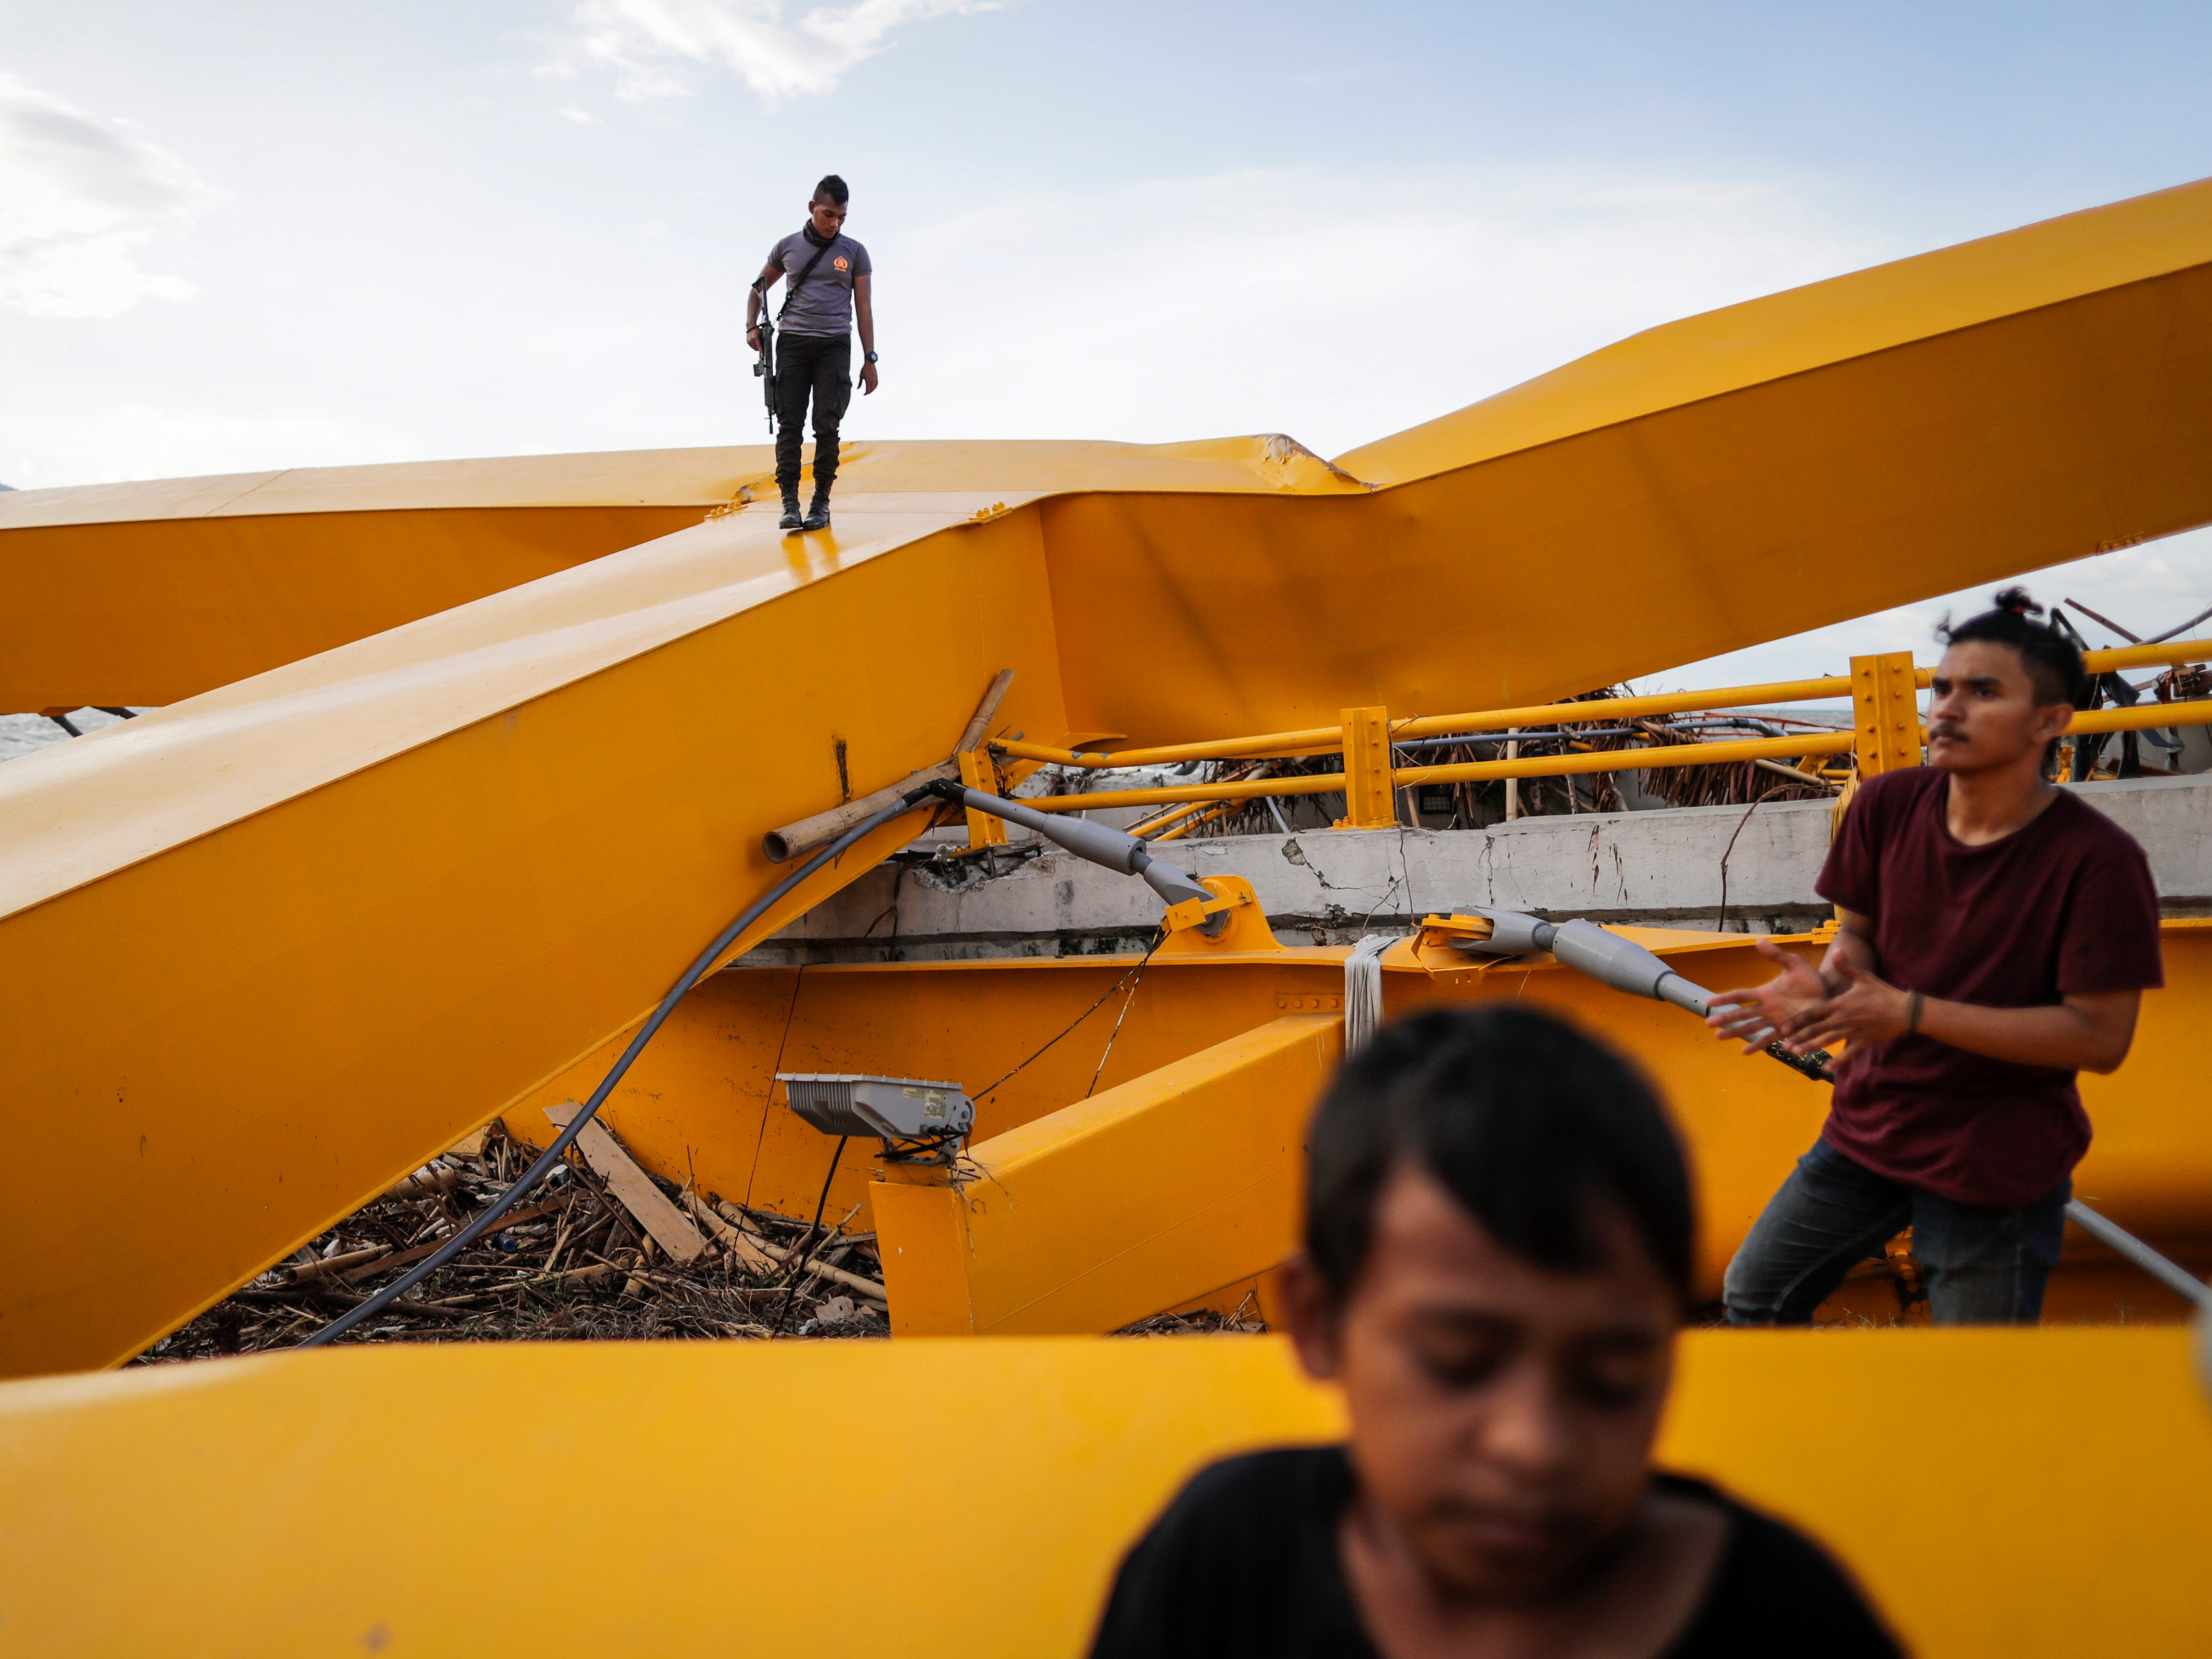 People inspect the 'Palu Empat' bridge that was destroyed during a tsunami at Talise beach in Palu, Central Sulawesi, Indonesia, Oct. 6, 2018.